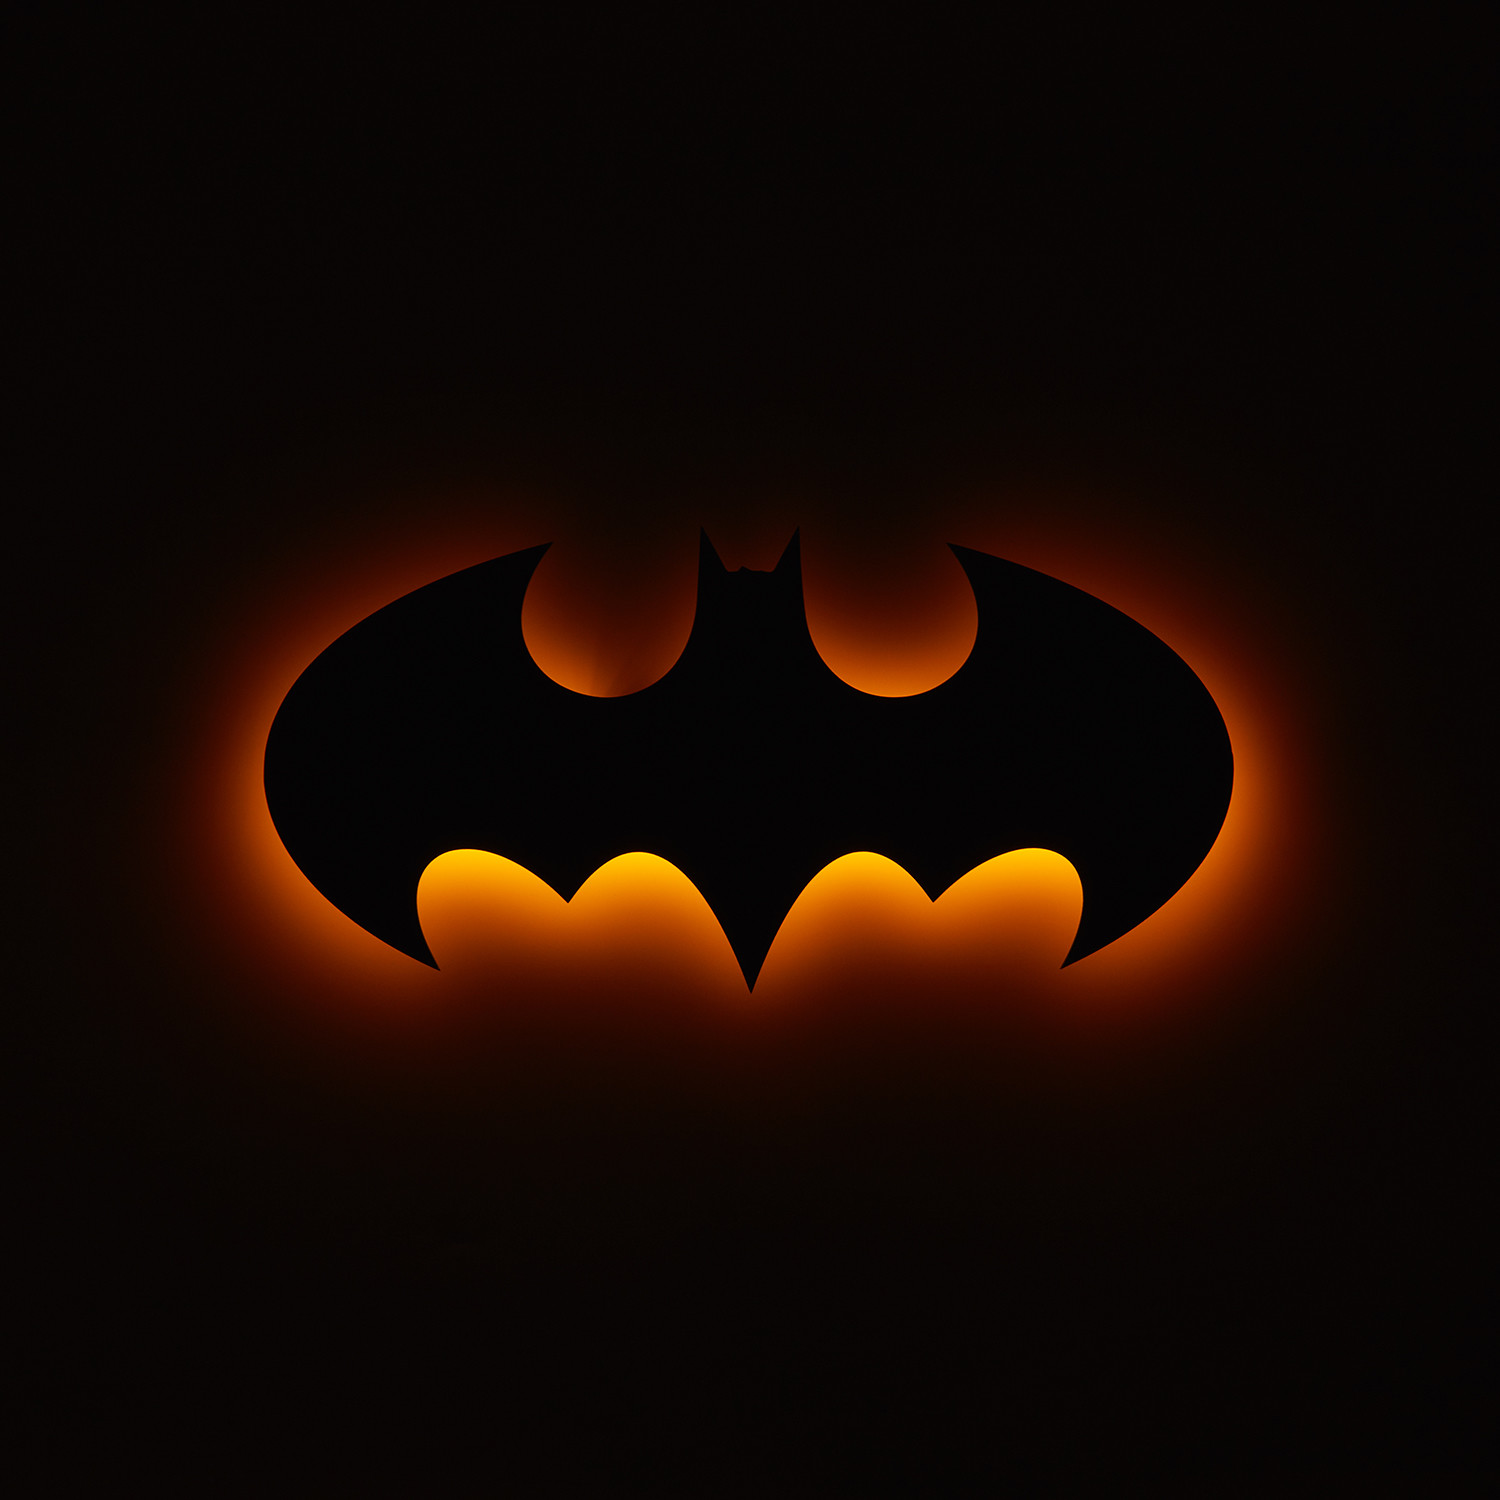 Batman Logo Floating Metal Wall Art Led Backlit 30w X 15h X